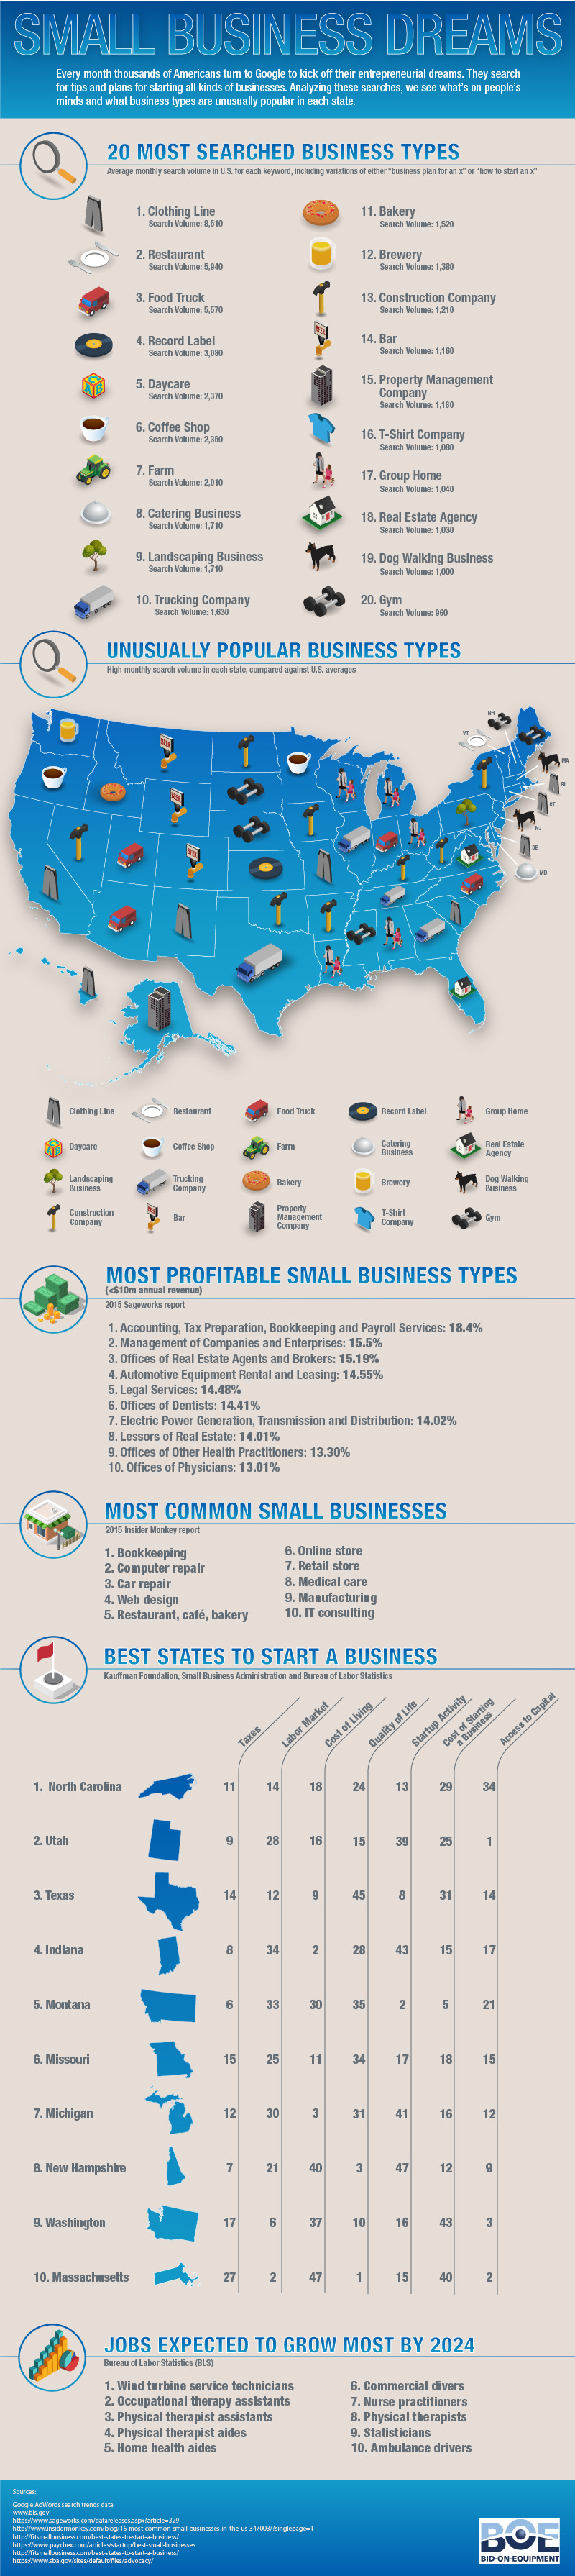 Small Business Dreams [Infographic]